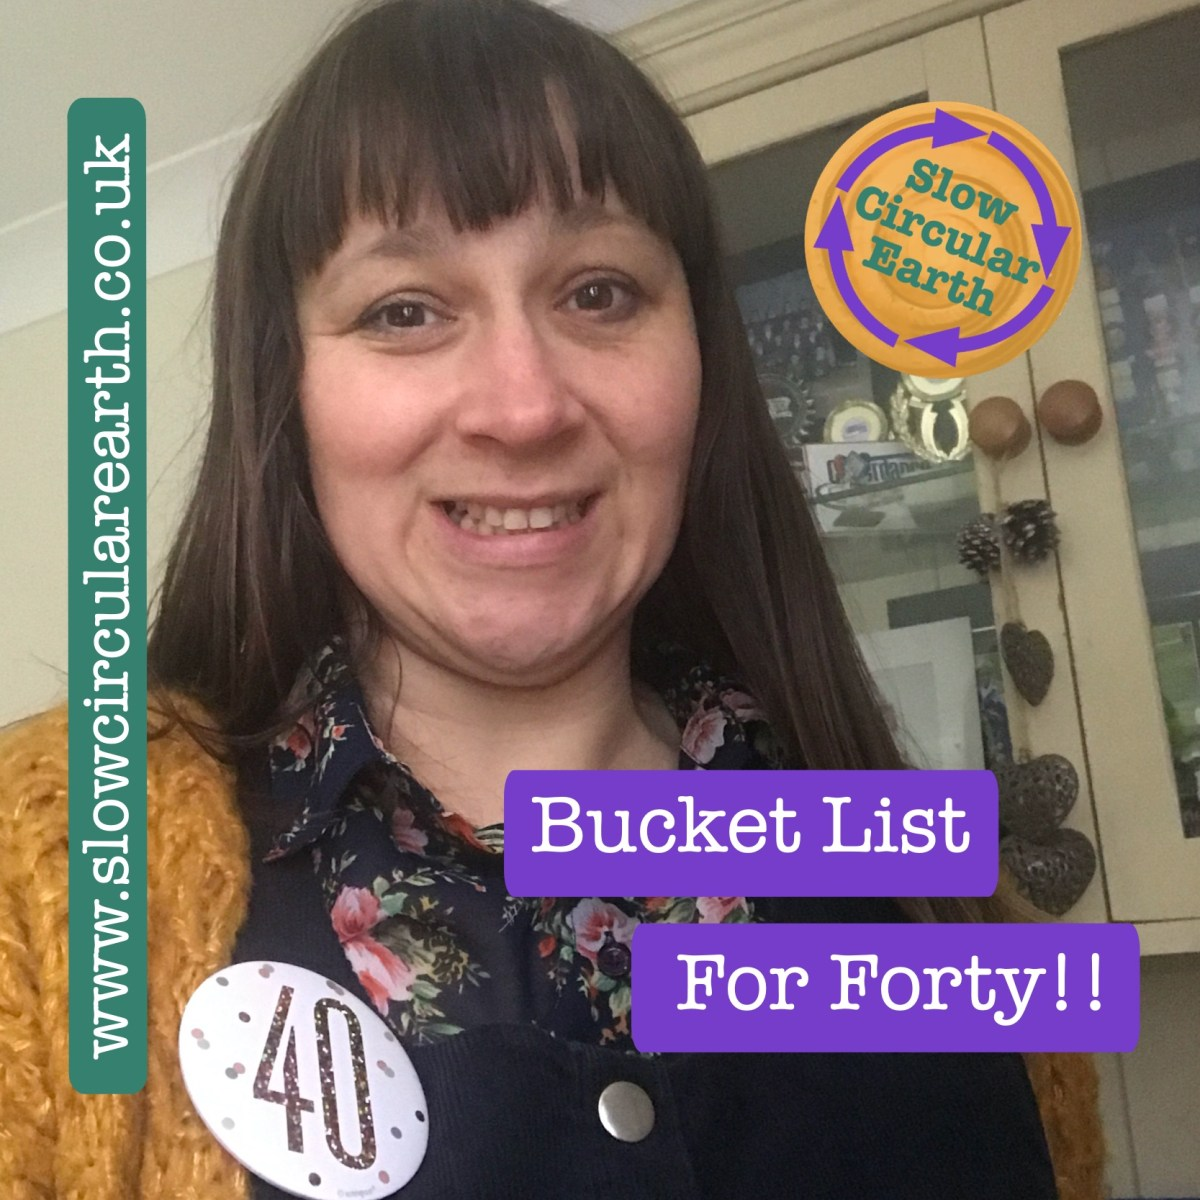 Bucket list for forty!!